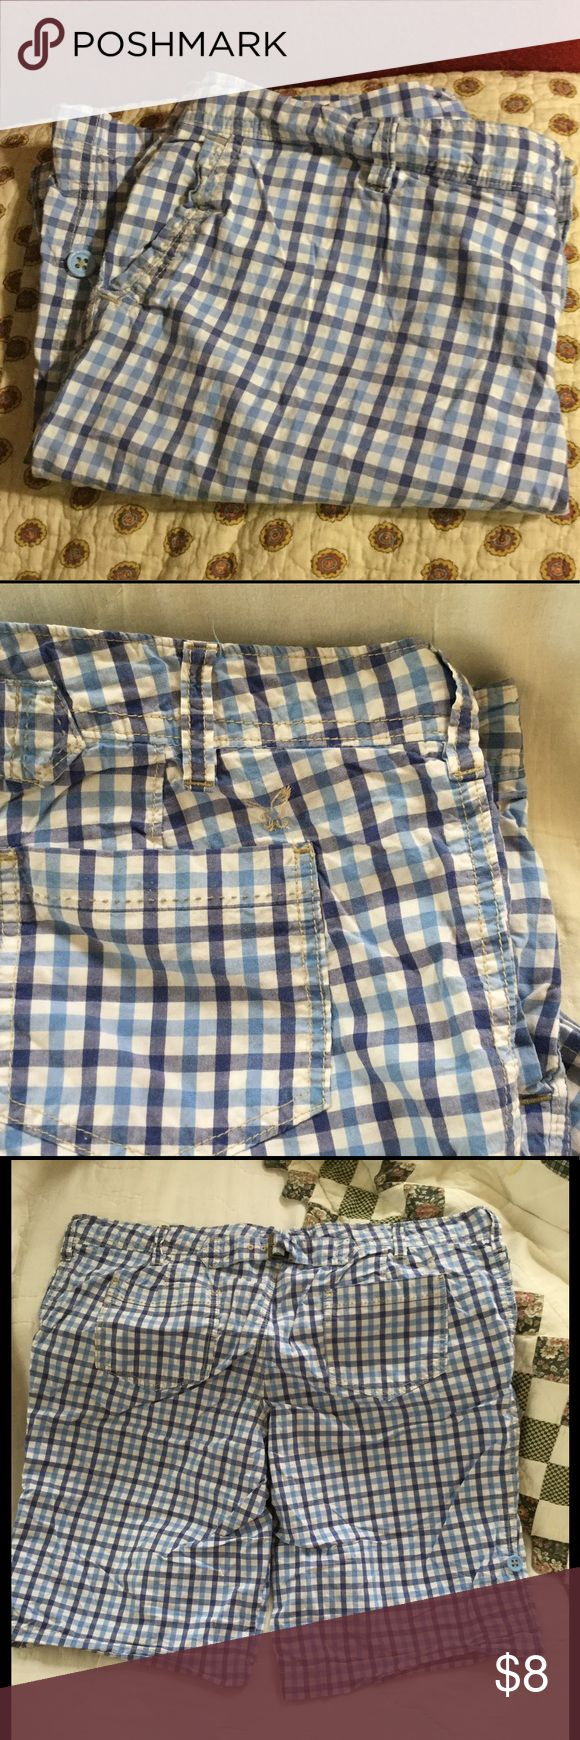 AE Outfitters..live your life Blue checkered lowrise Bermuda shorts by AE OUTFITTERS ...has button & tabs on legs to roll up for a shorter wear...size 16 American Eagle Outfitters Shorts Bermudas